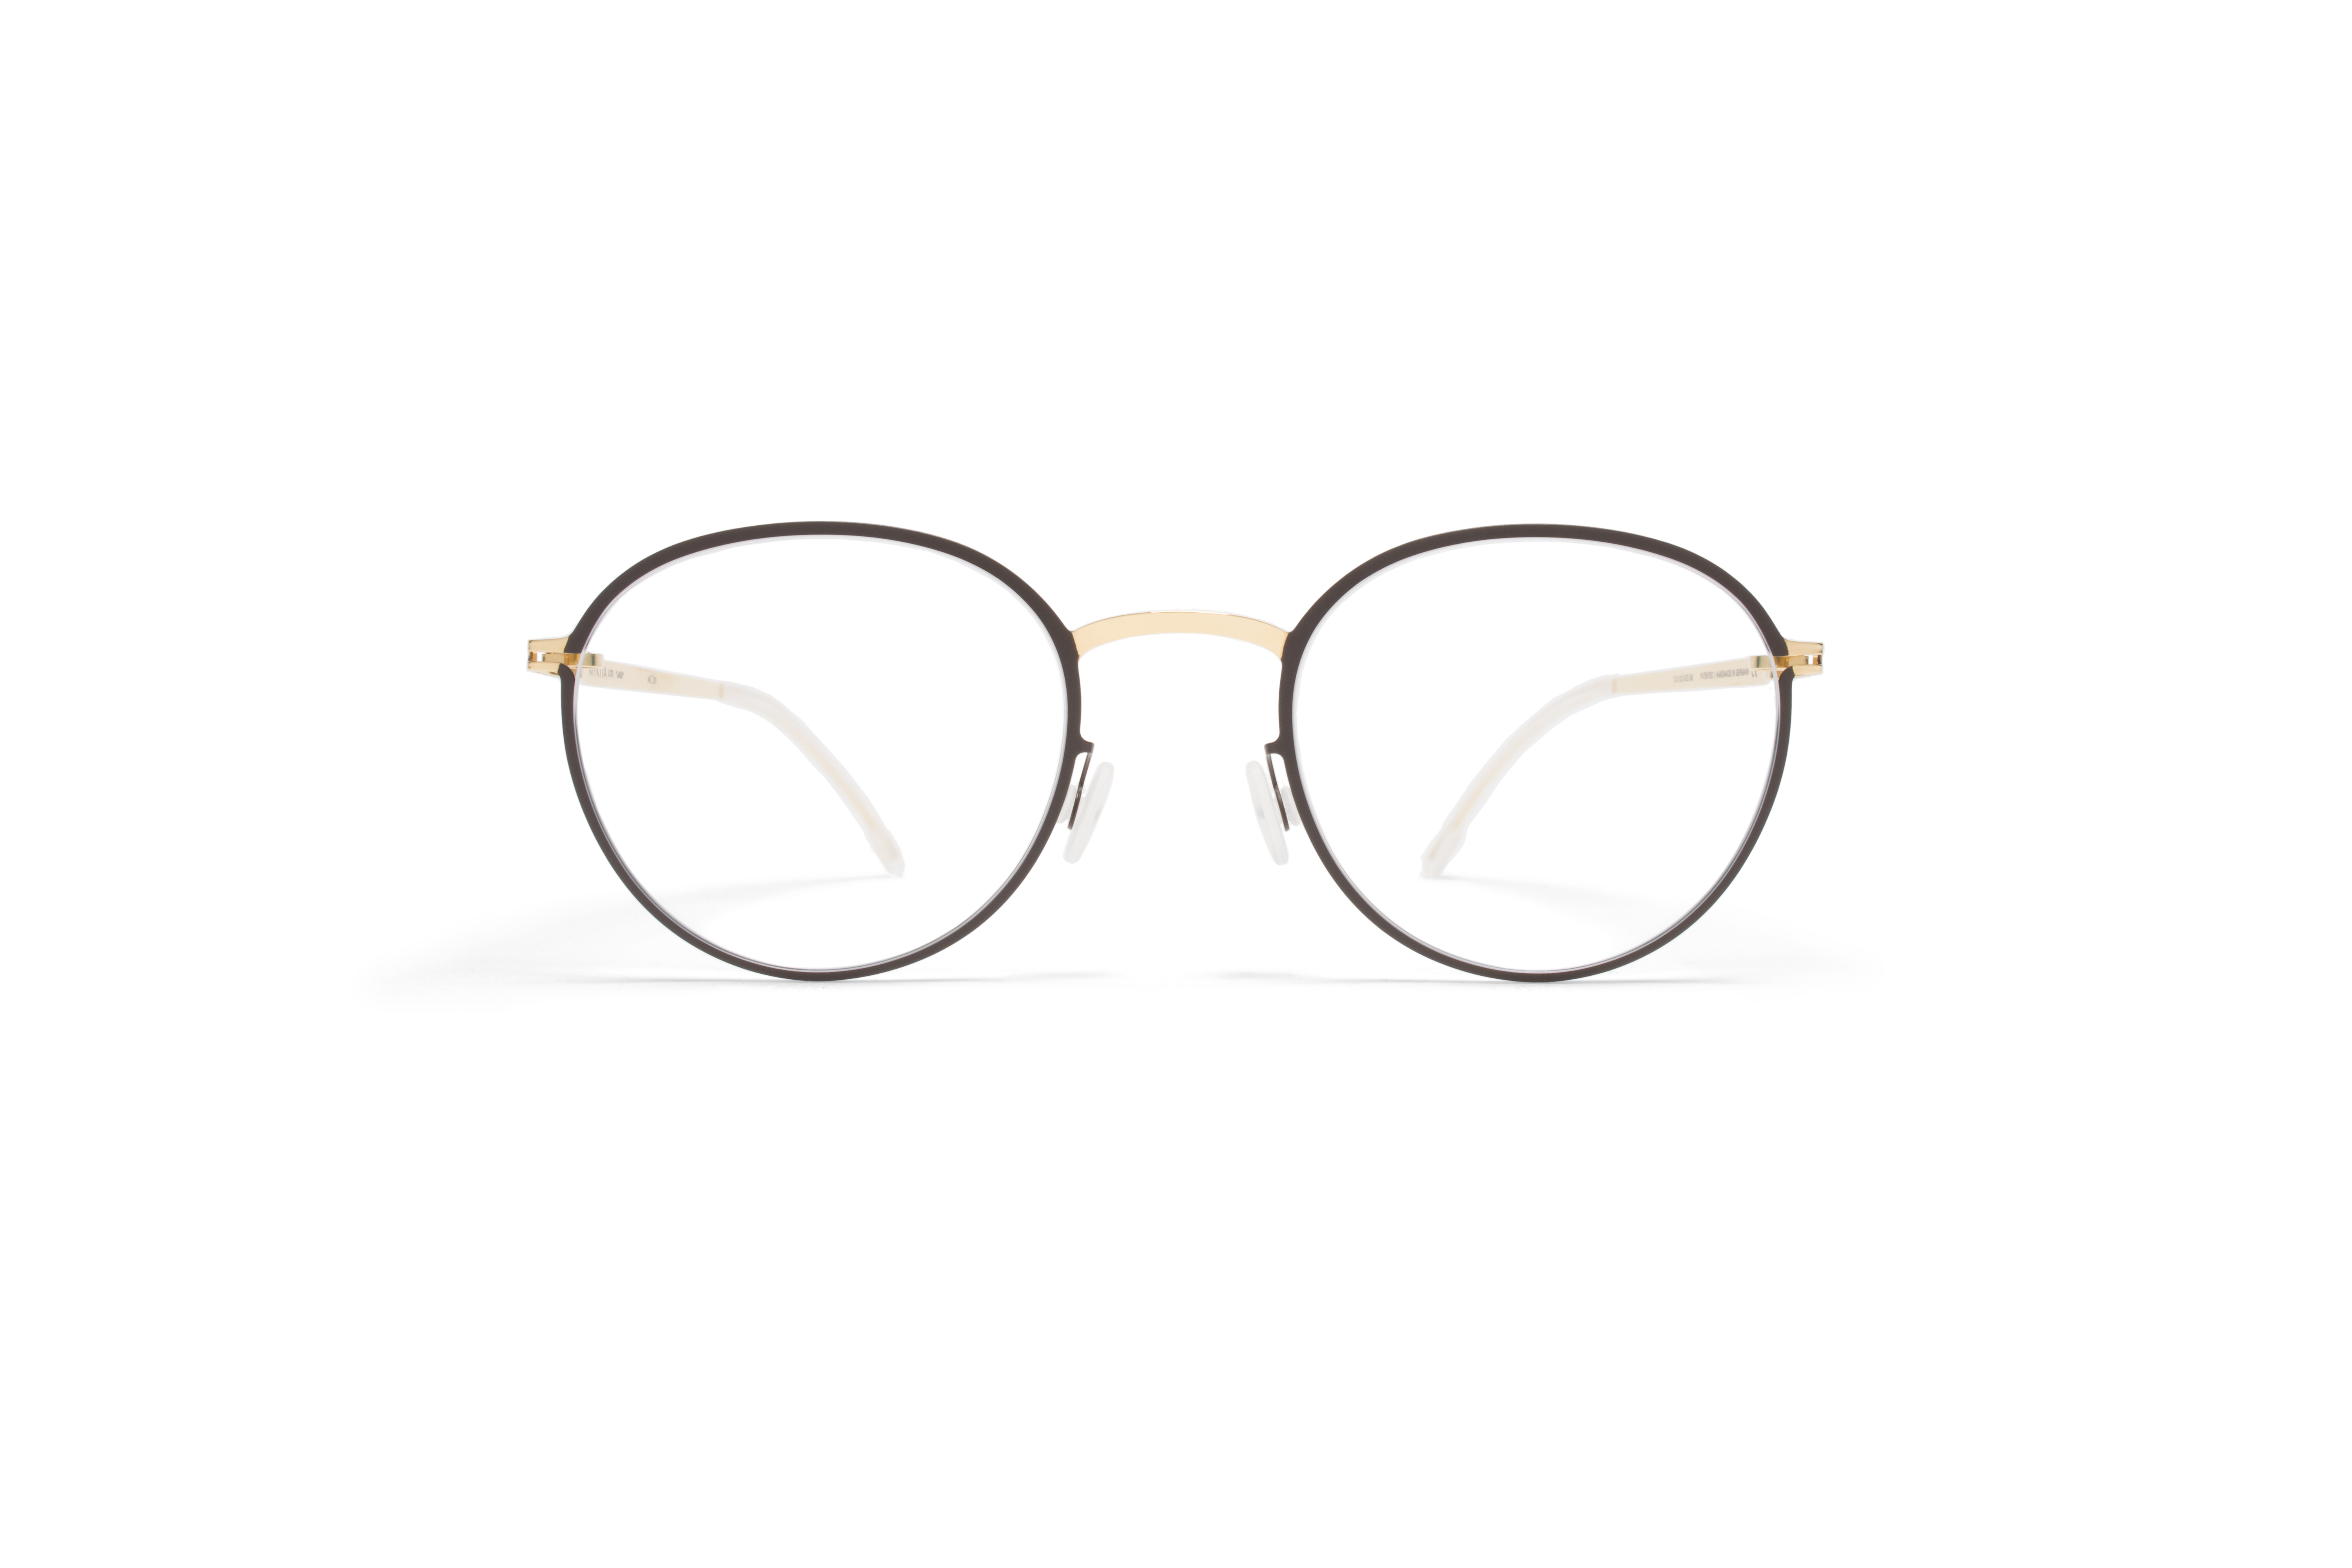 MYKITA Lite Rx Jais Gold Darkbrown Clear P562acc3b17f8c